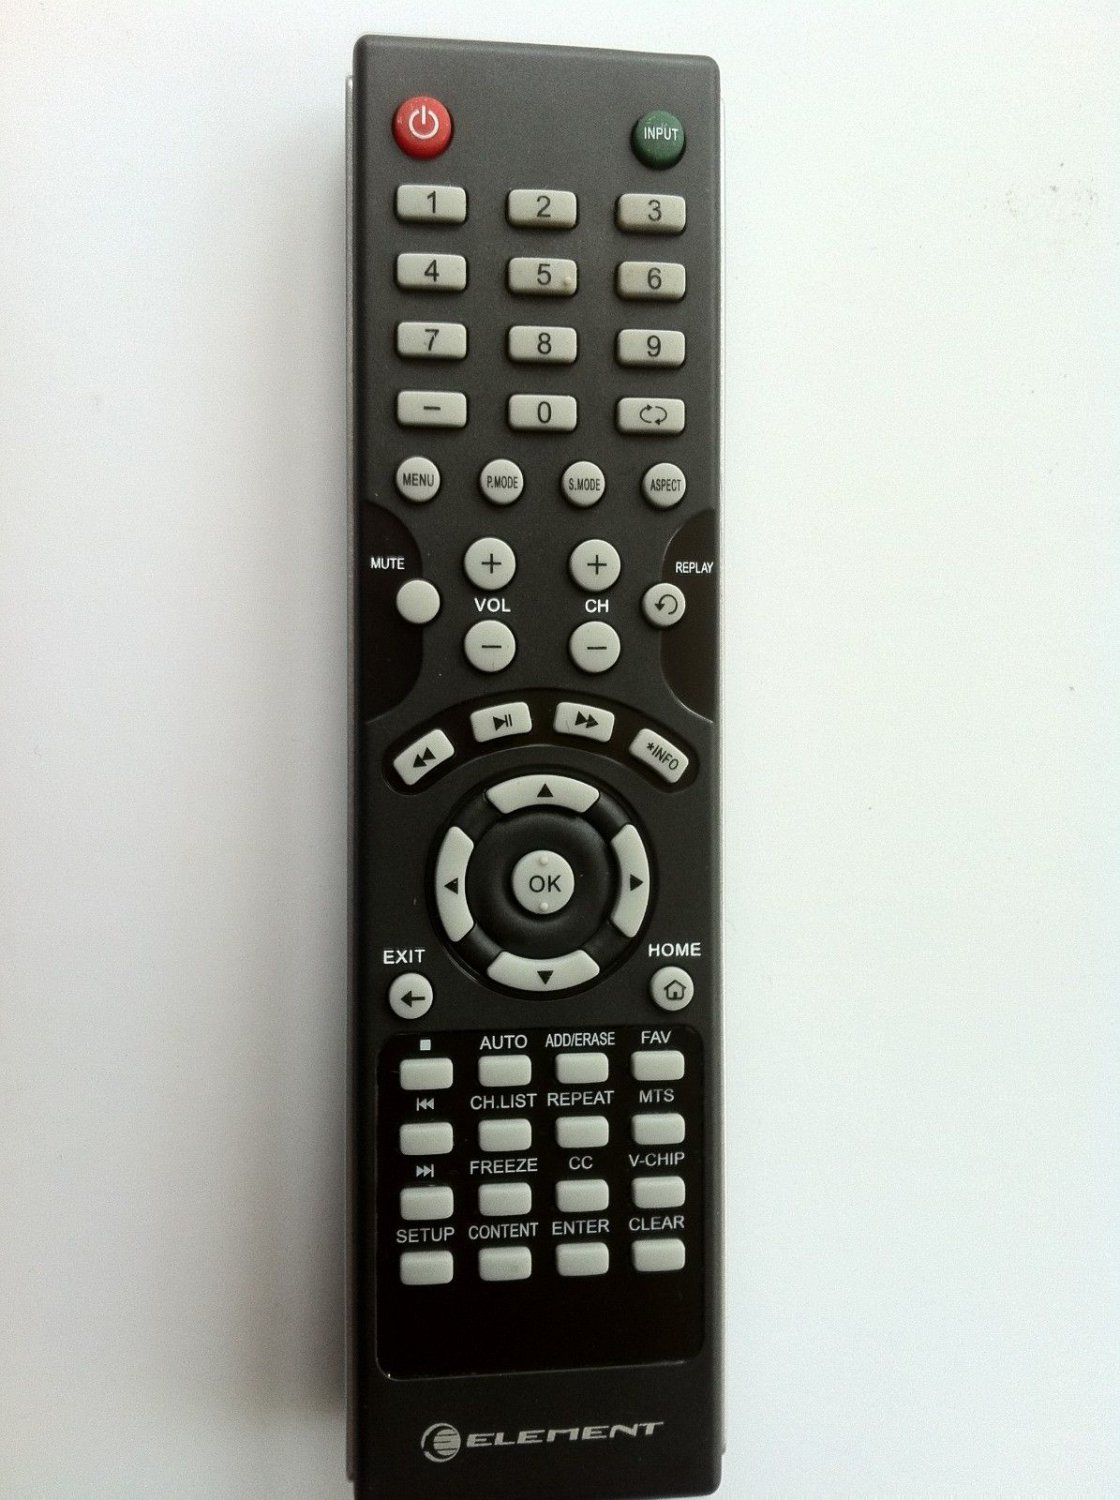 remote control parts accessories with Element Tv Remote Control For Eleft406 on Element Tv Remote Control For Eleft406 further Gclgr besides Kedu Nvr Switch 230v 1ph E Stop 200093 as well Discontinued Home Appliance Accessories furthermore 29 Micro Slim Electric Skateboard.